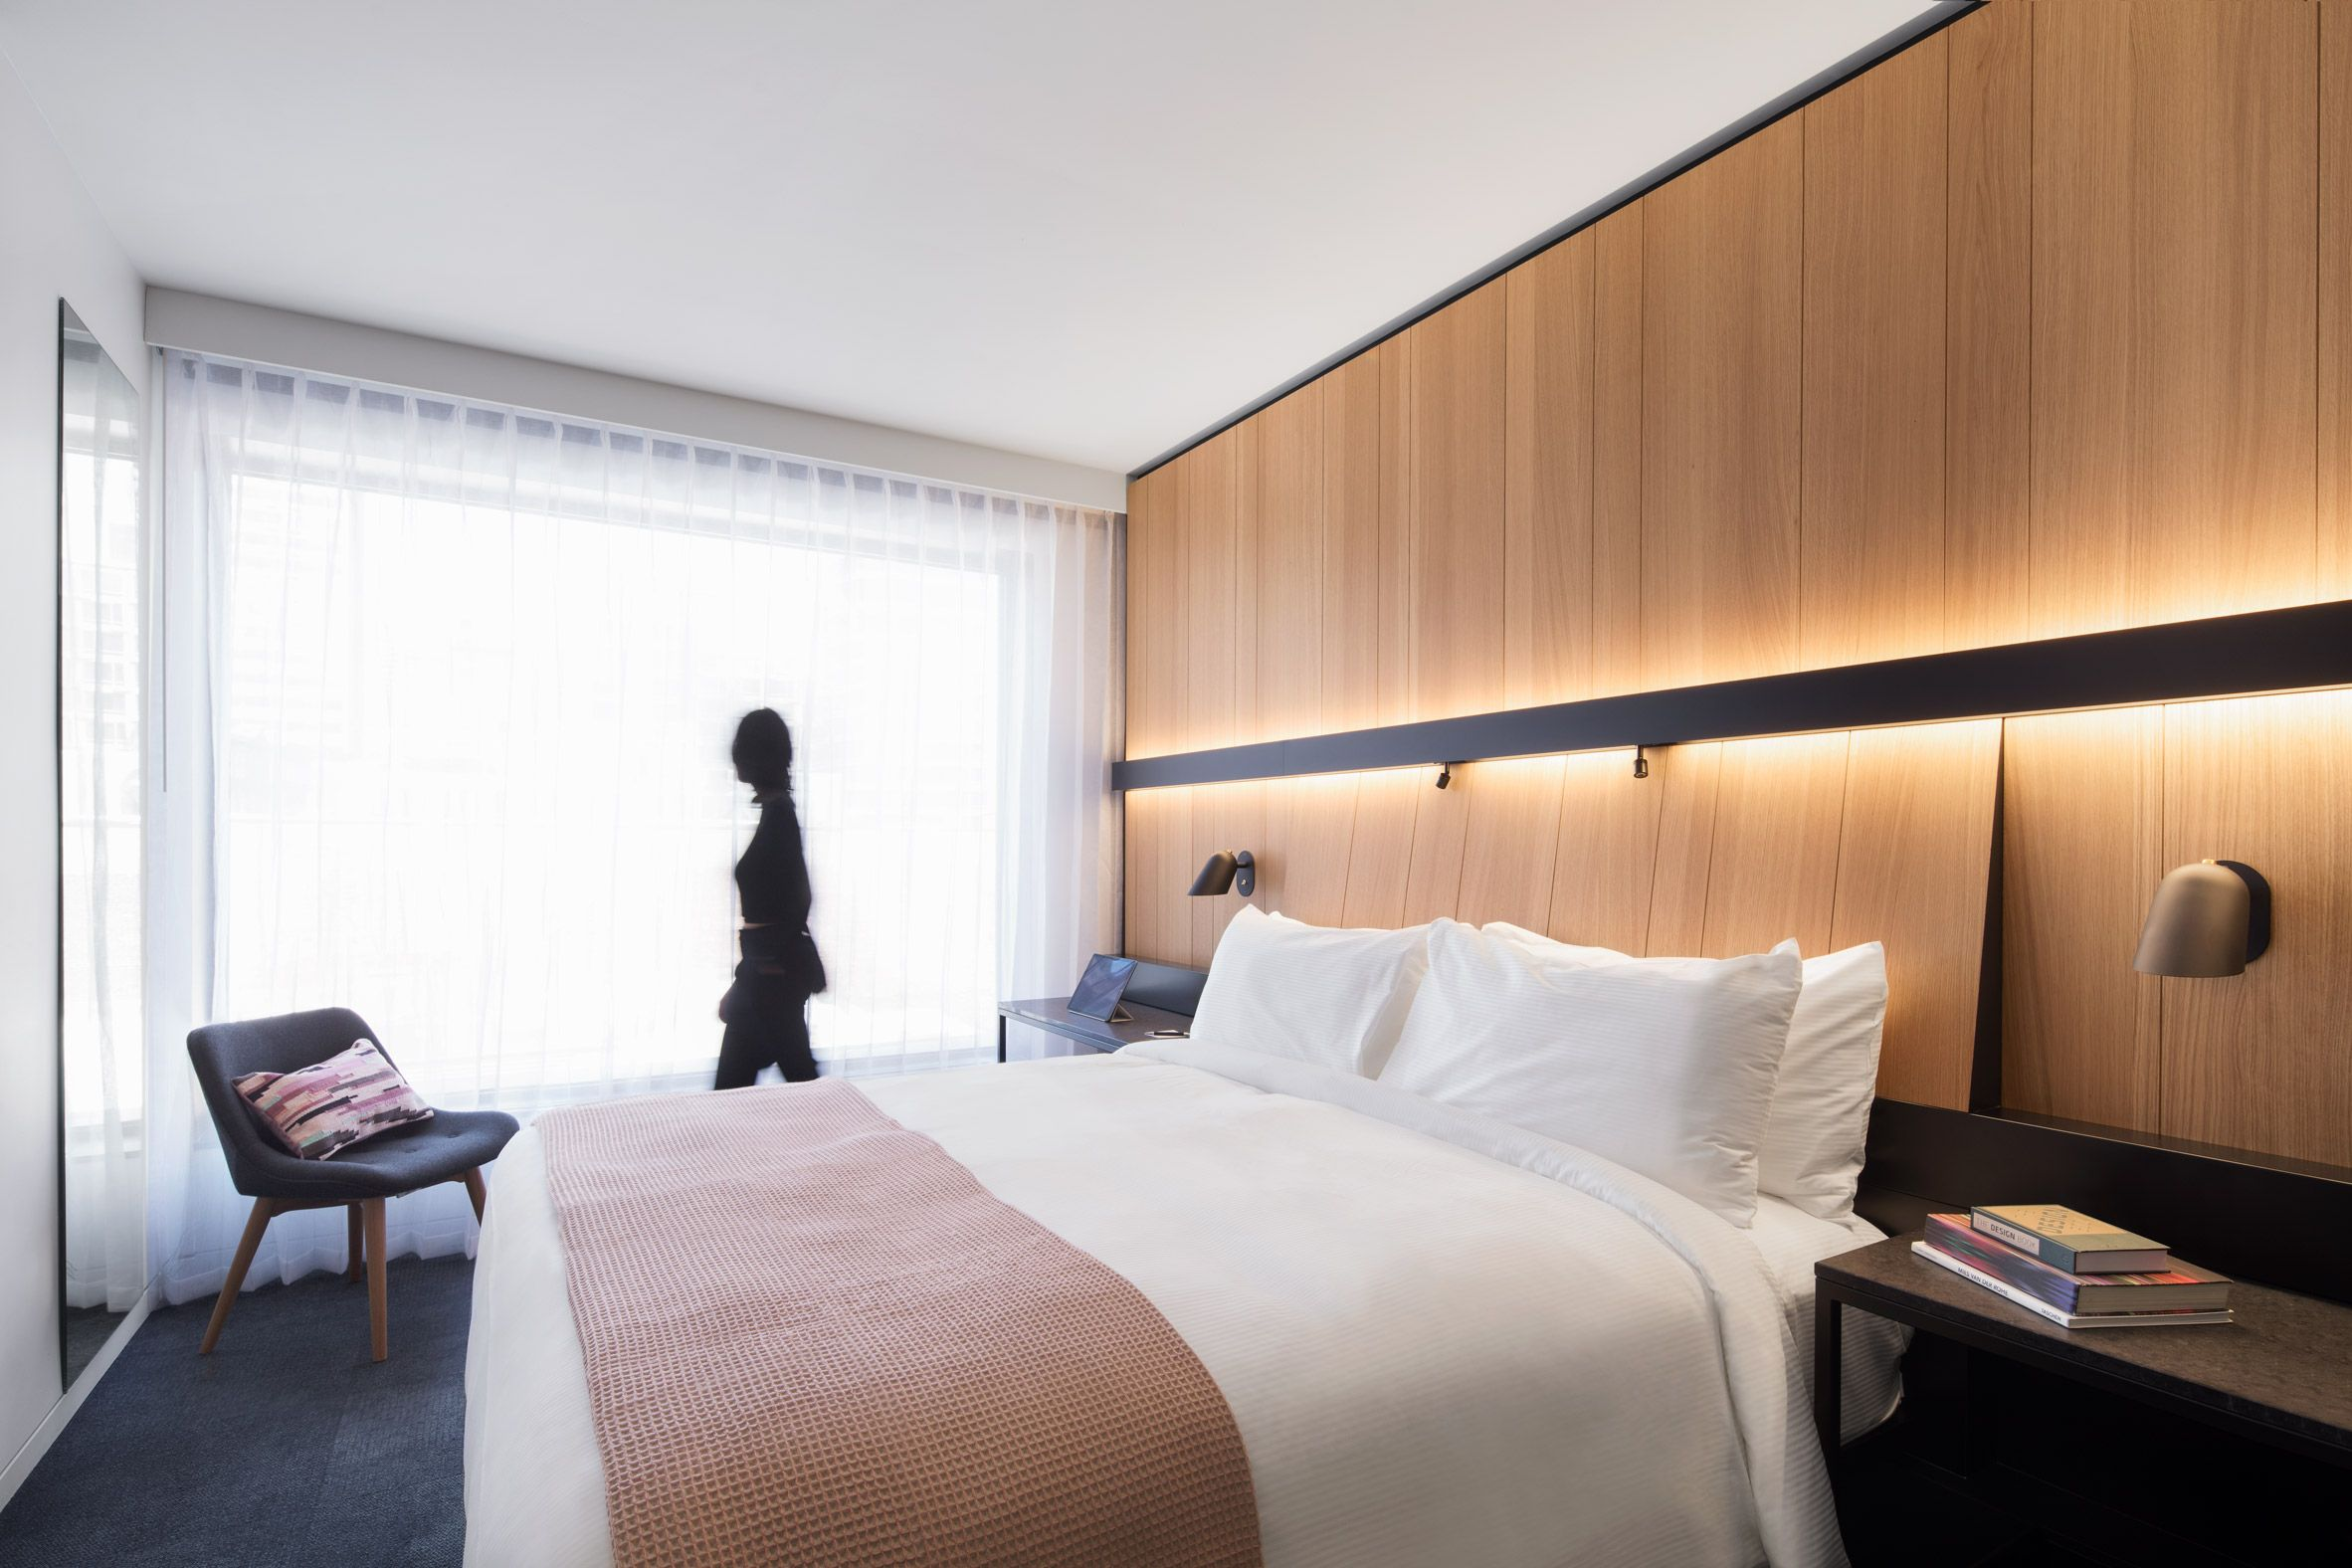 Biancheria Da Letto Hotel Montreal S Hotel Monville By Acdf Architecture Features Strict